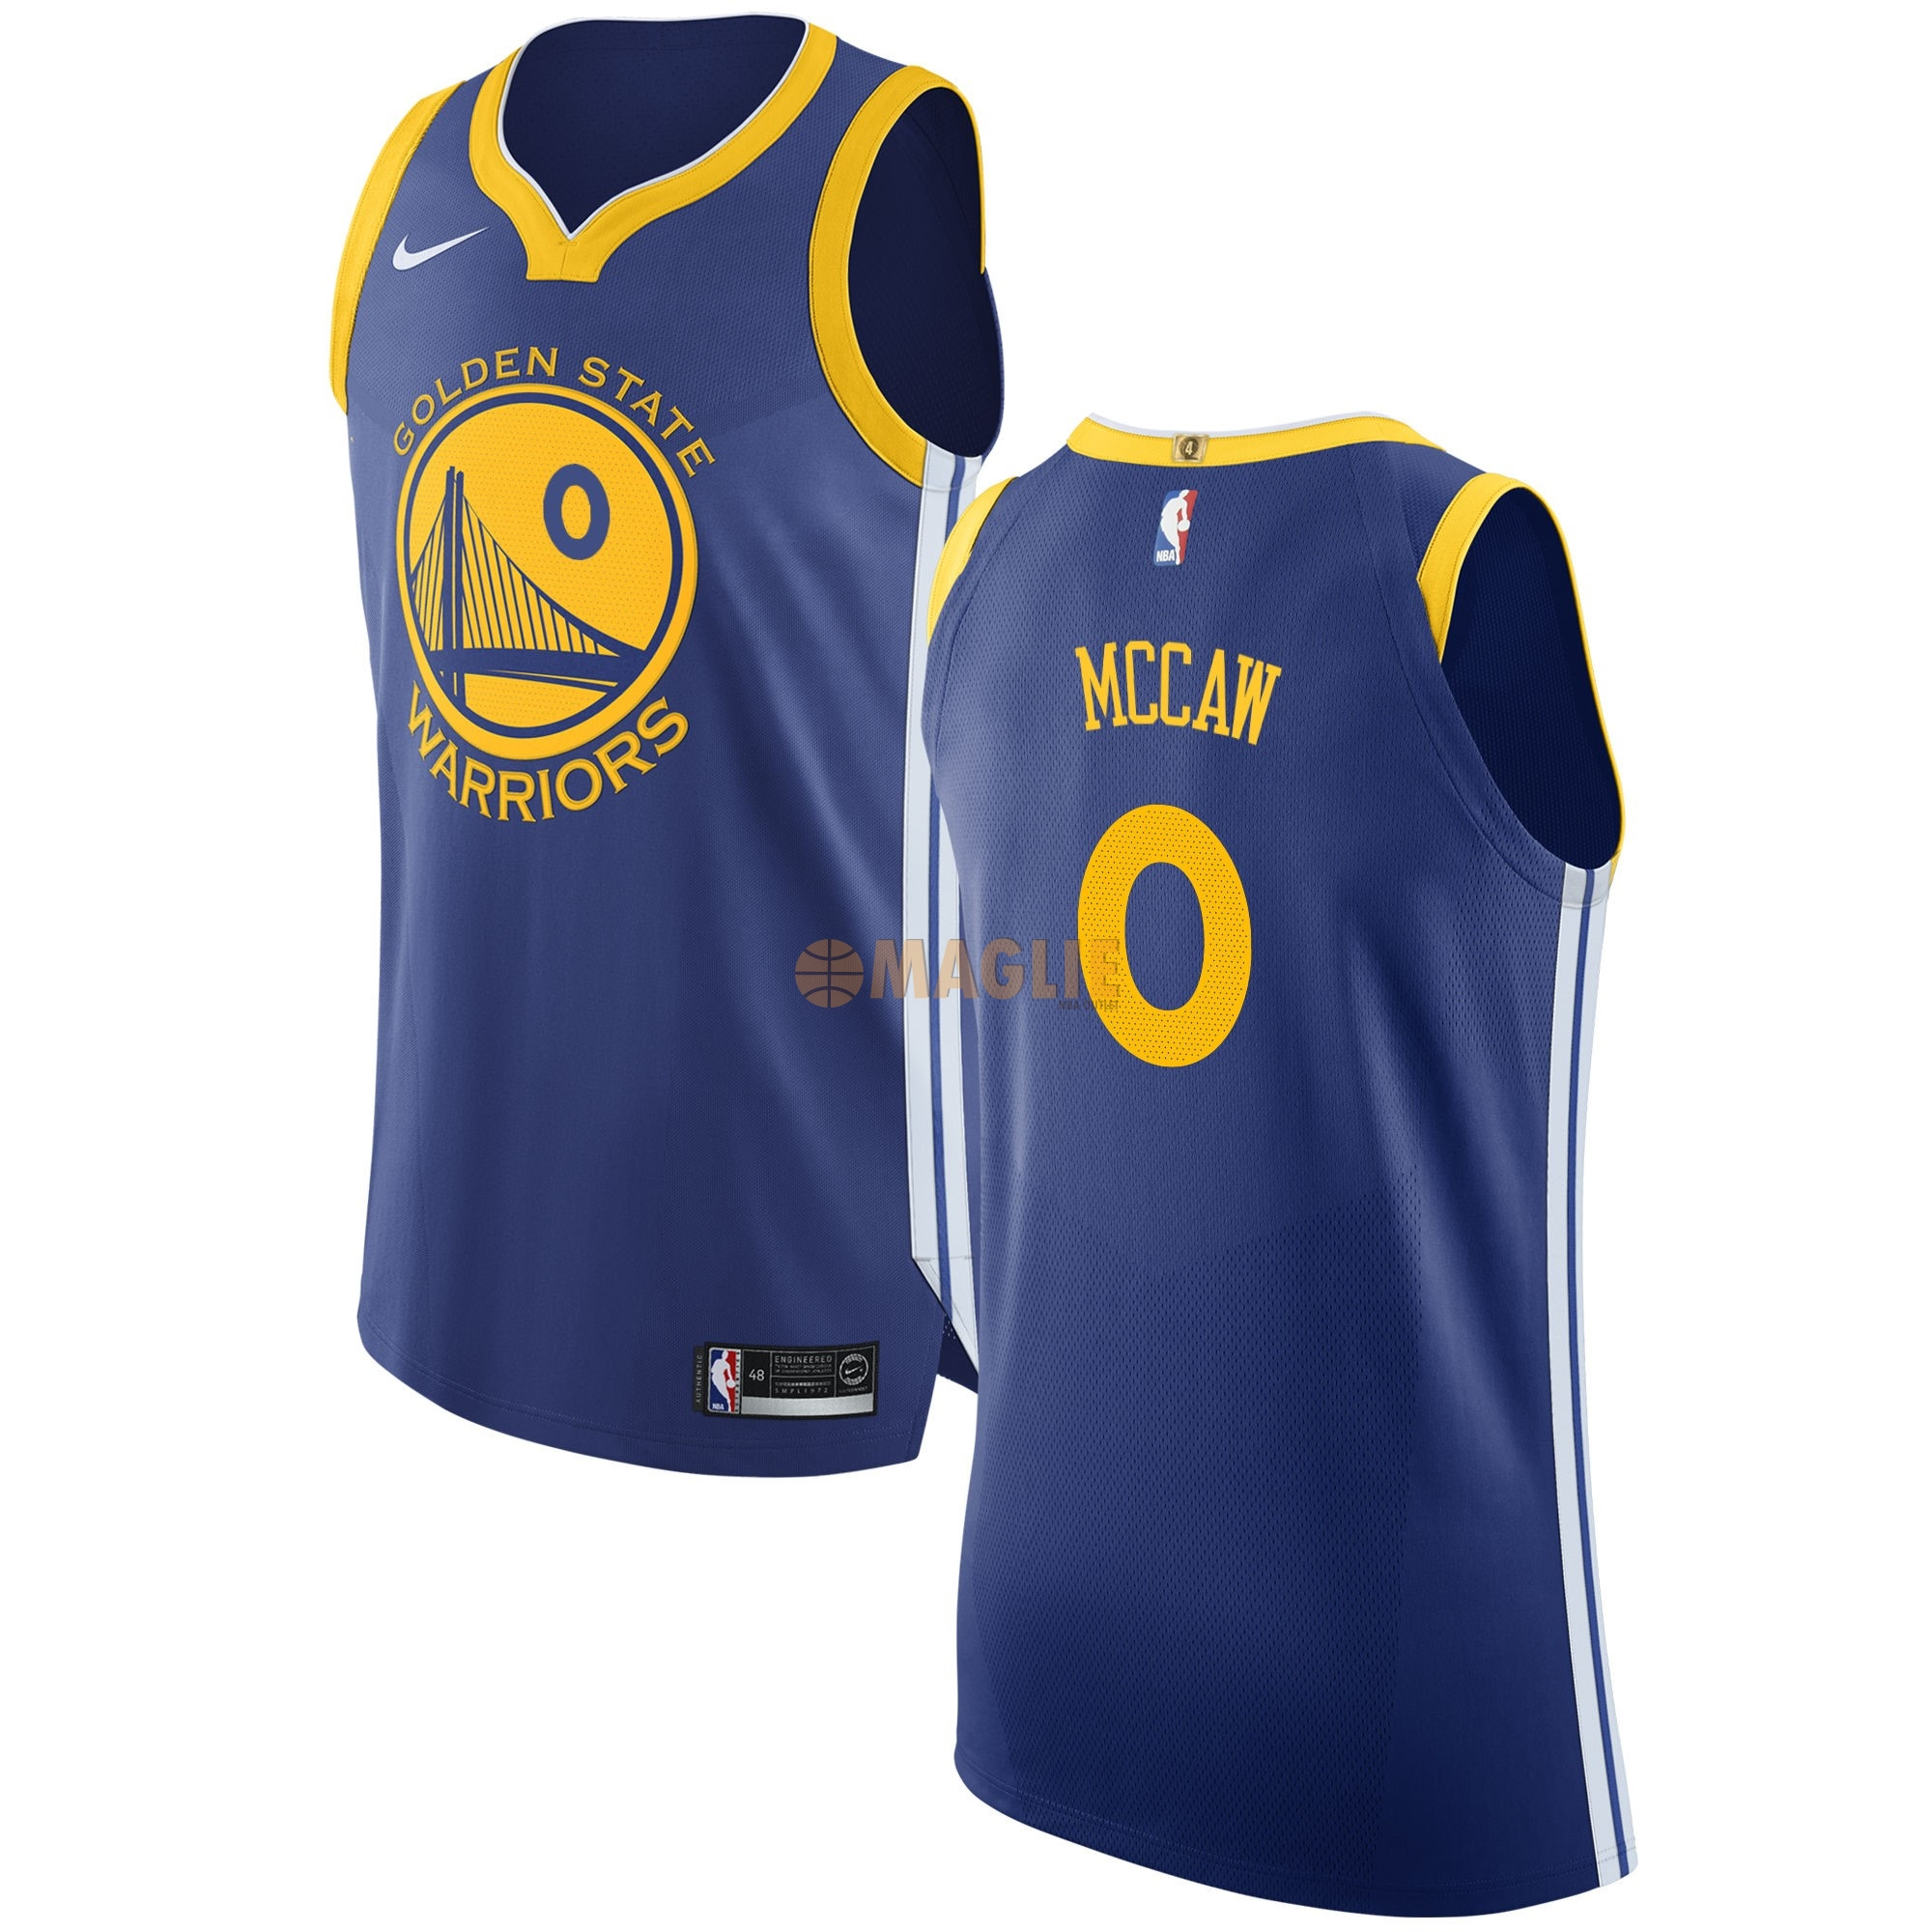 Acquista Sconto Maglia NBA Nike Golden State Warriors NO.0 Patrick McCaw Blu Icon